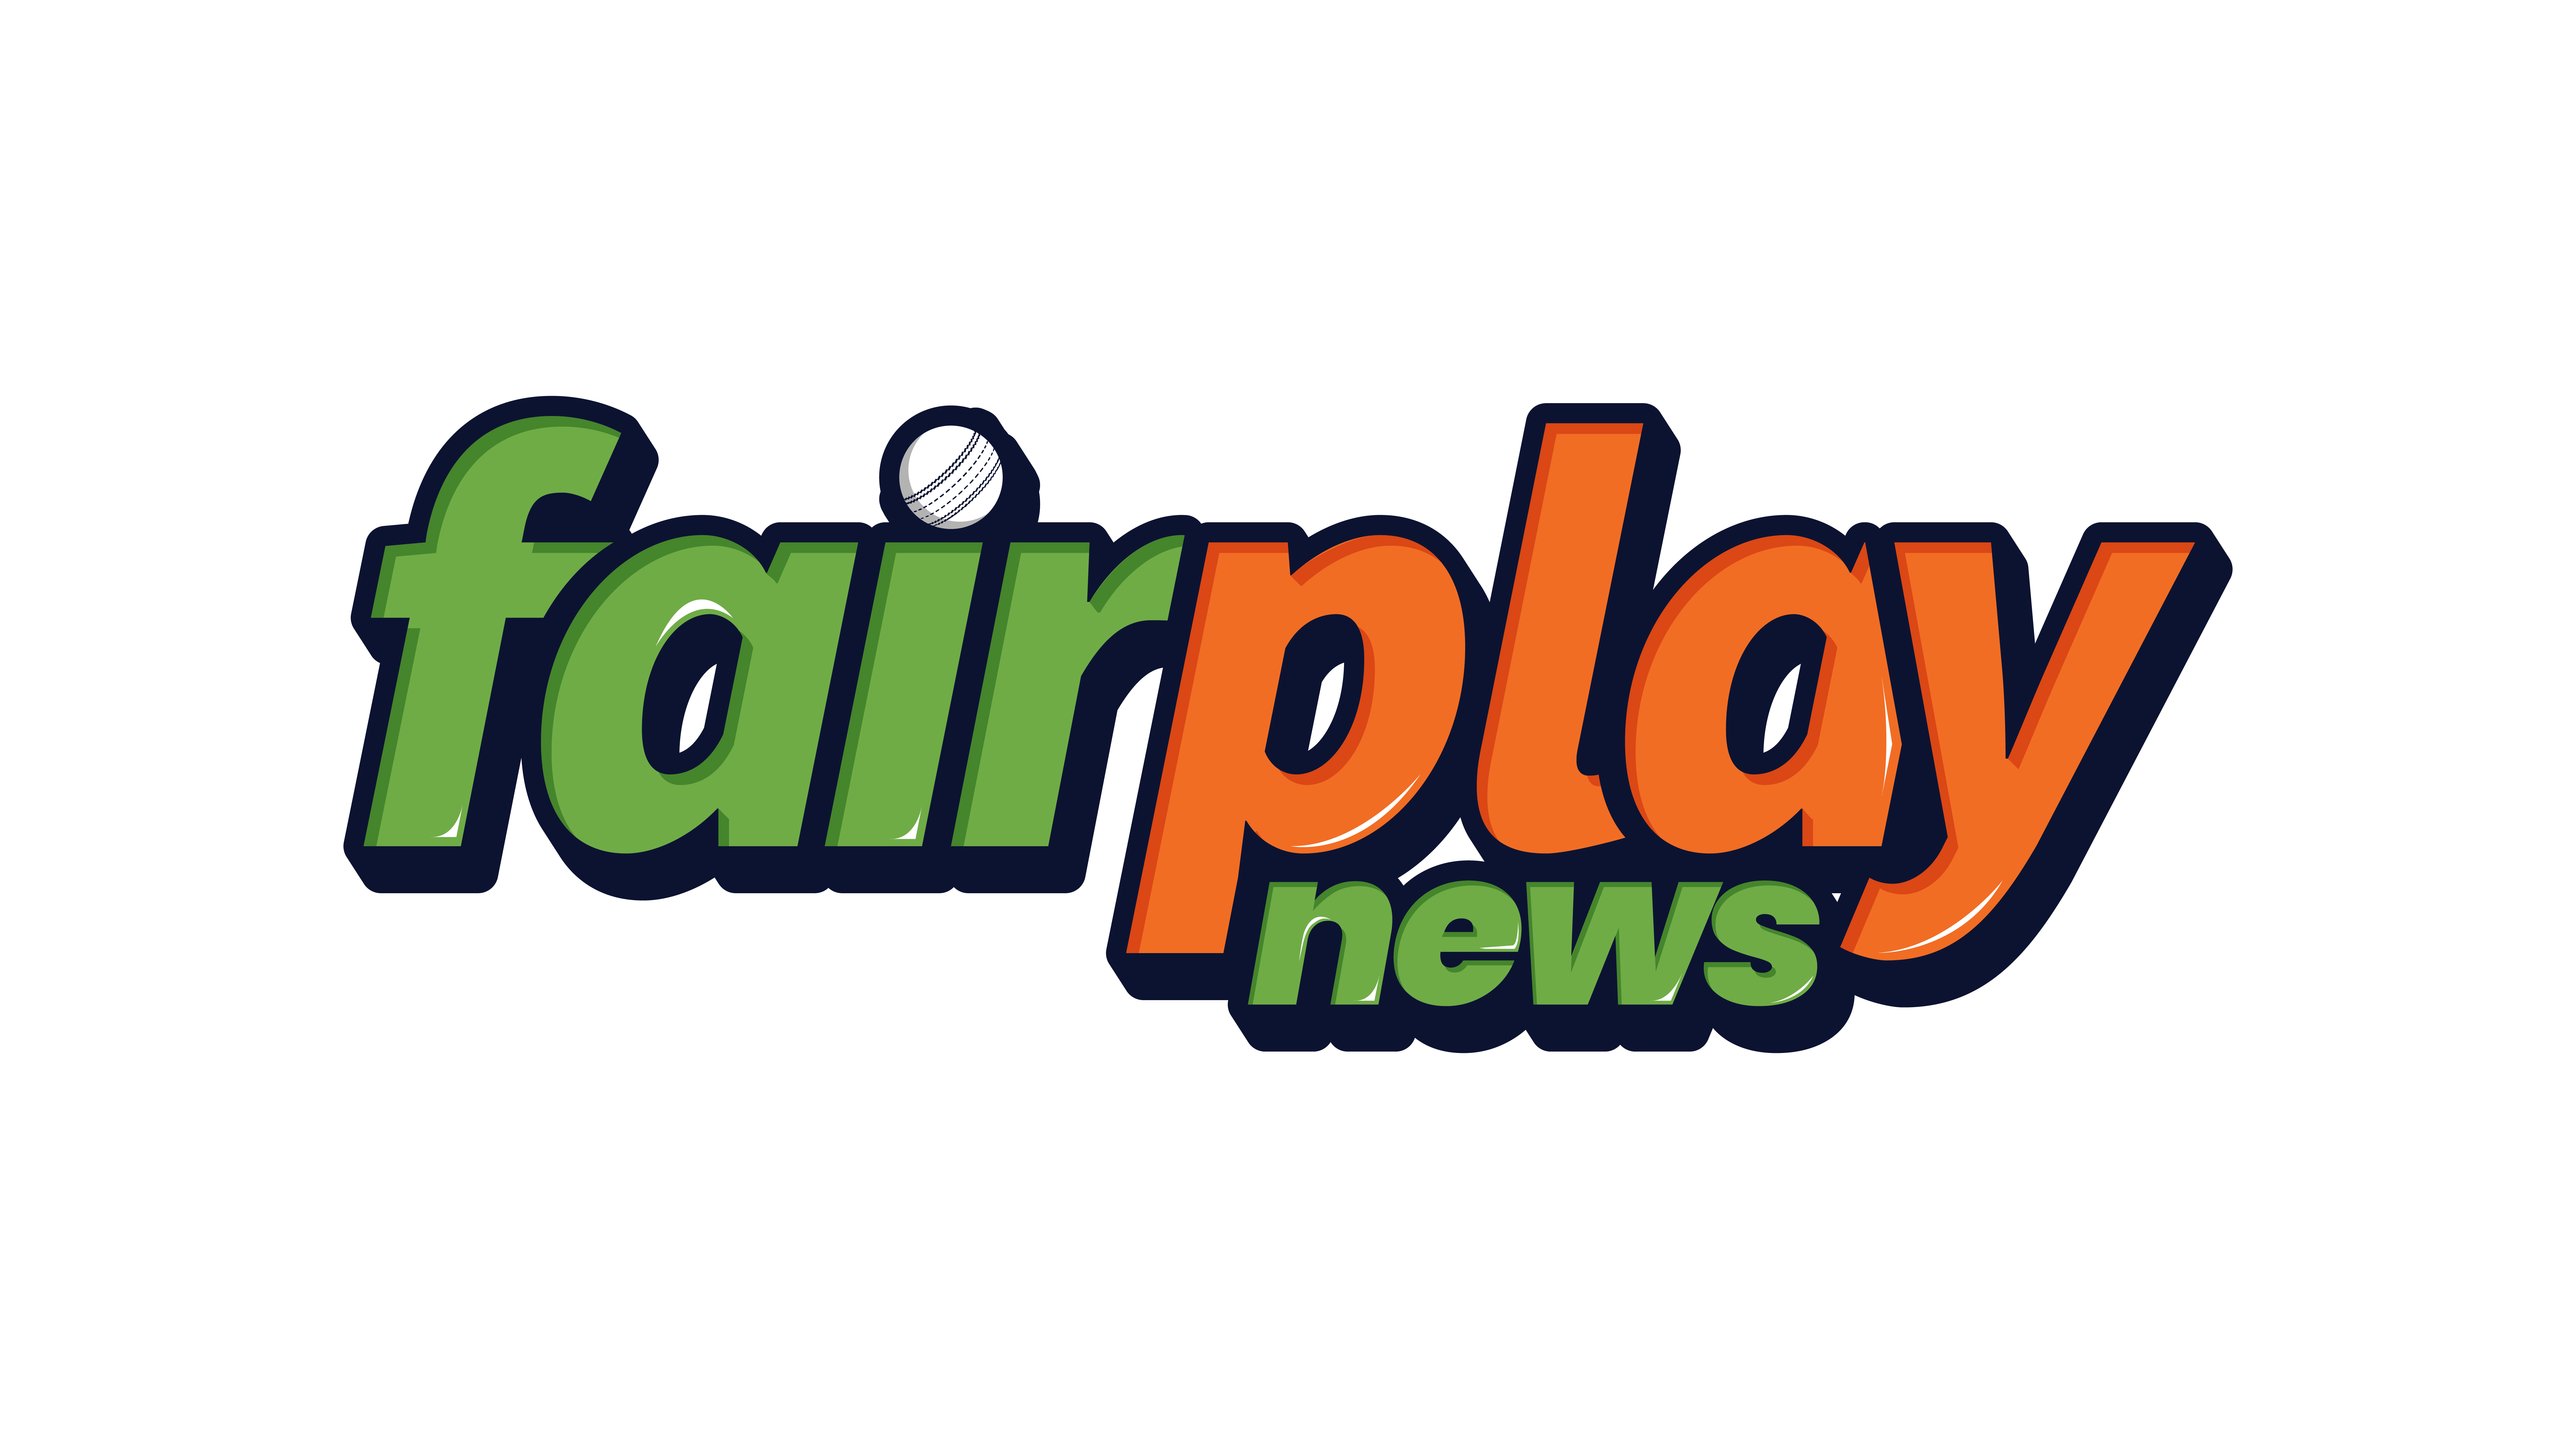 Fairplay News - Latest sports updates, scores and cricket news.